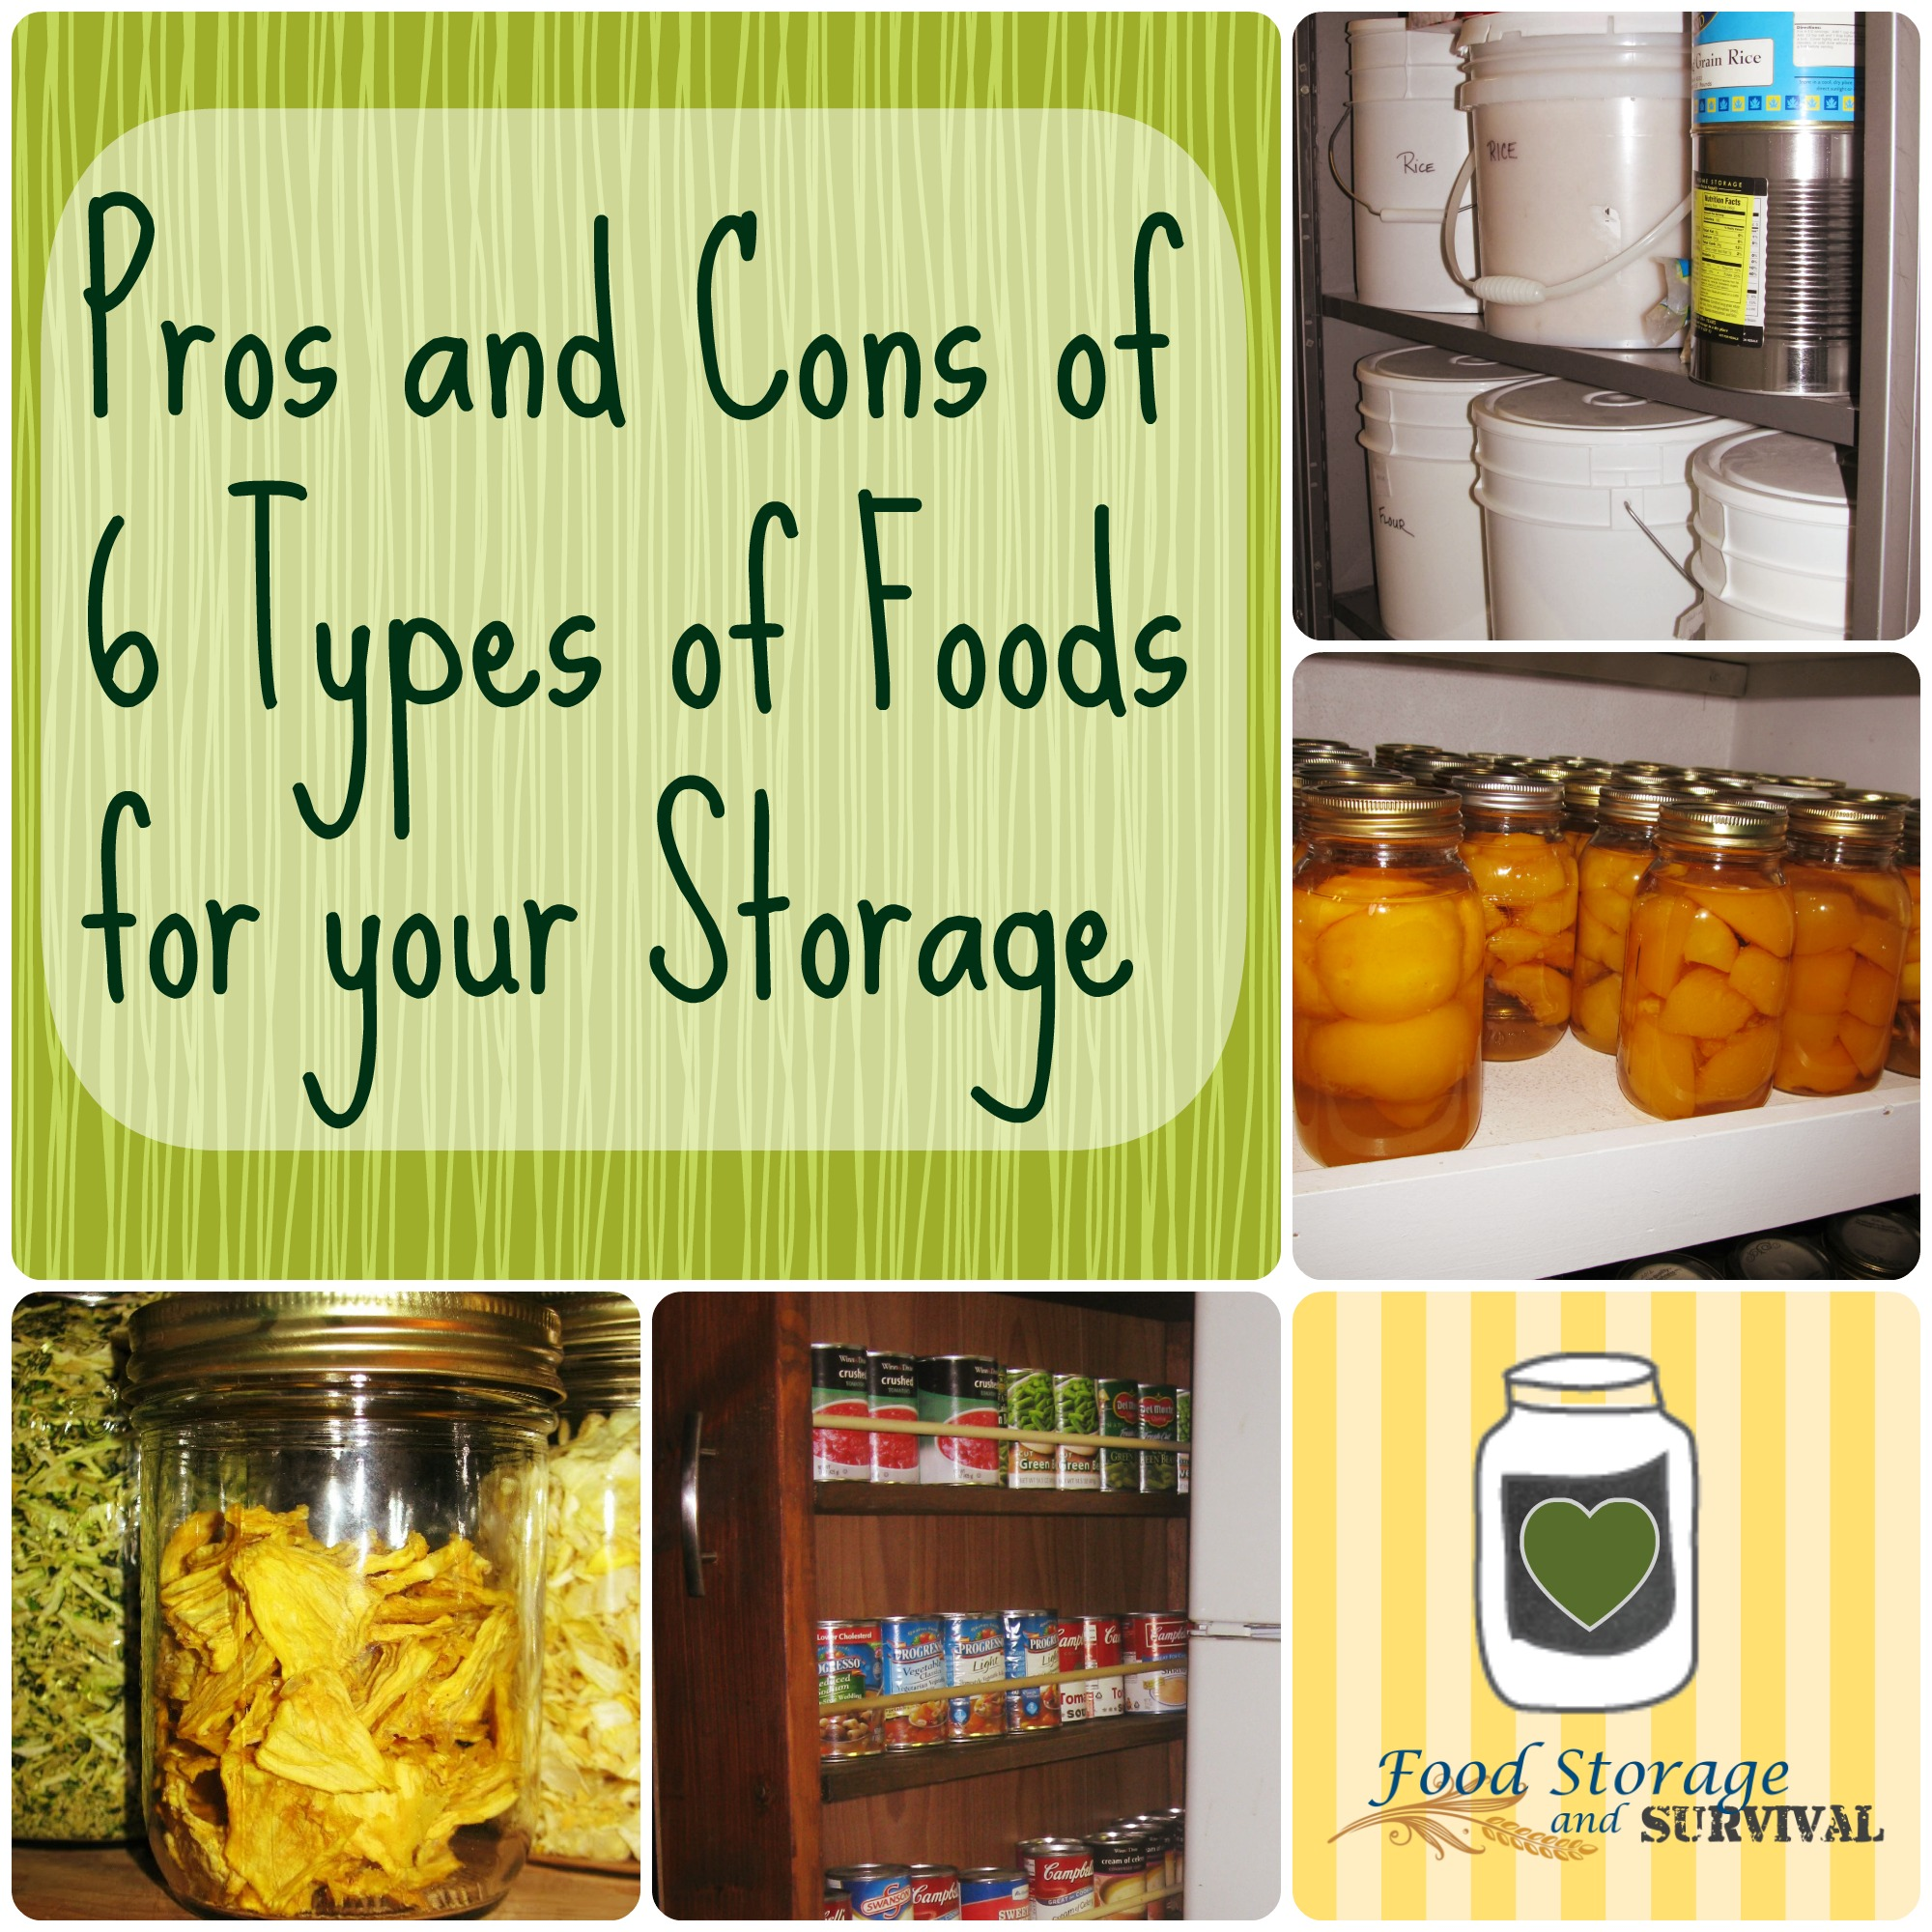 Listen in to Angela discuss the pros and cons of 6 types of foods for your  sc 1 st  Food Storage and Survival & Food Storage and Survival Radio Episode 50: Pros and cons of 6 Types ...